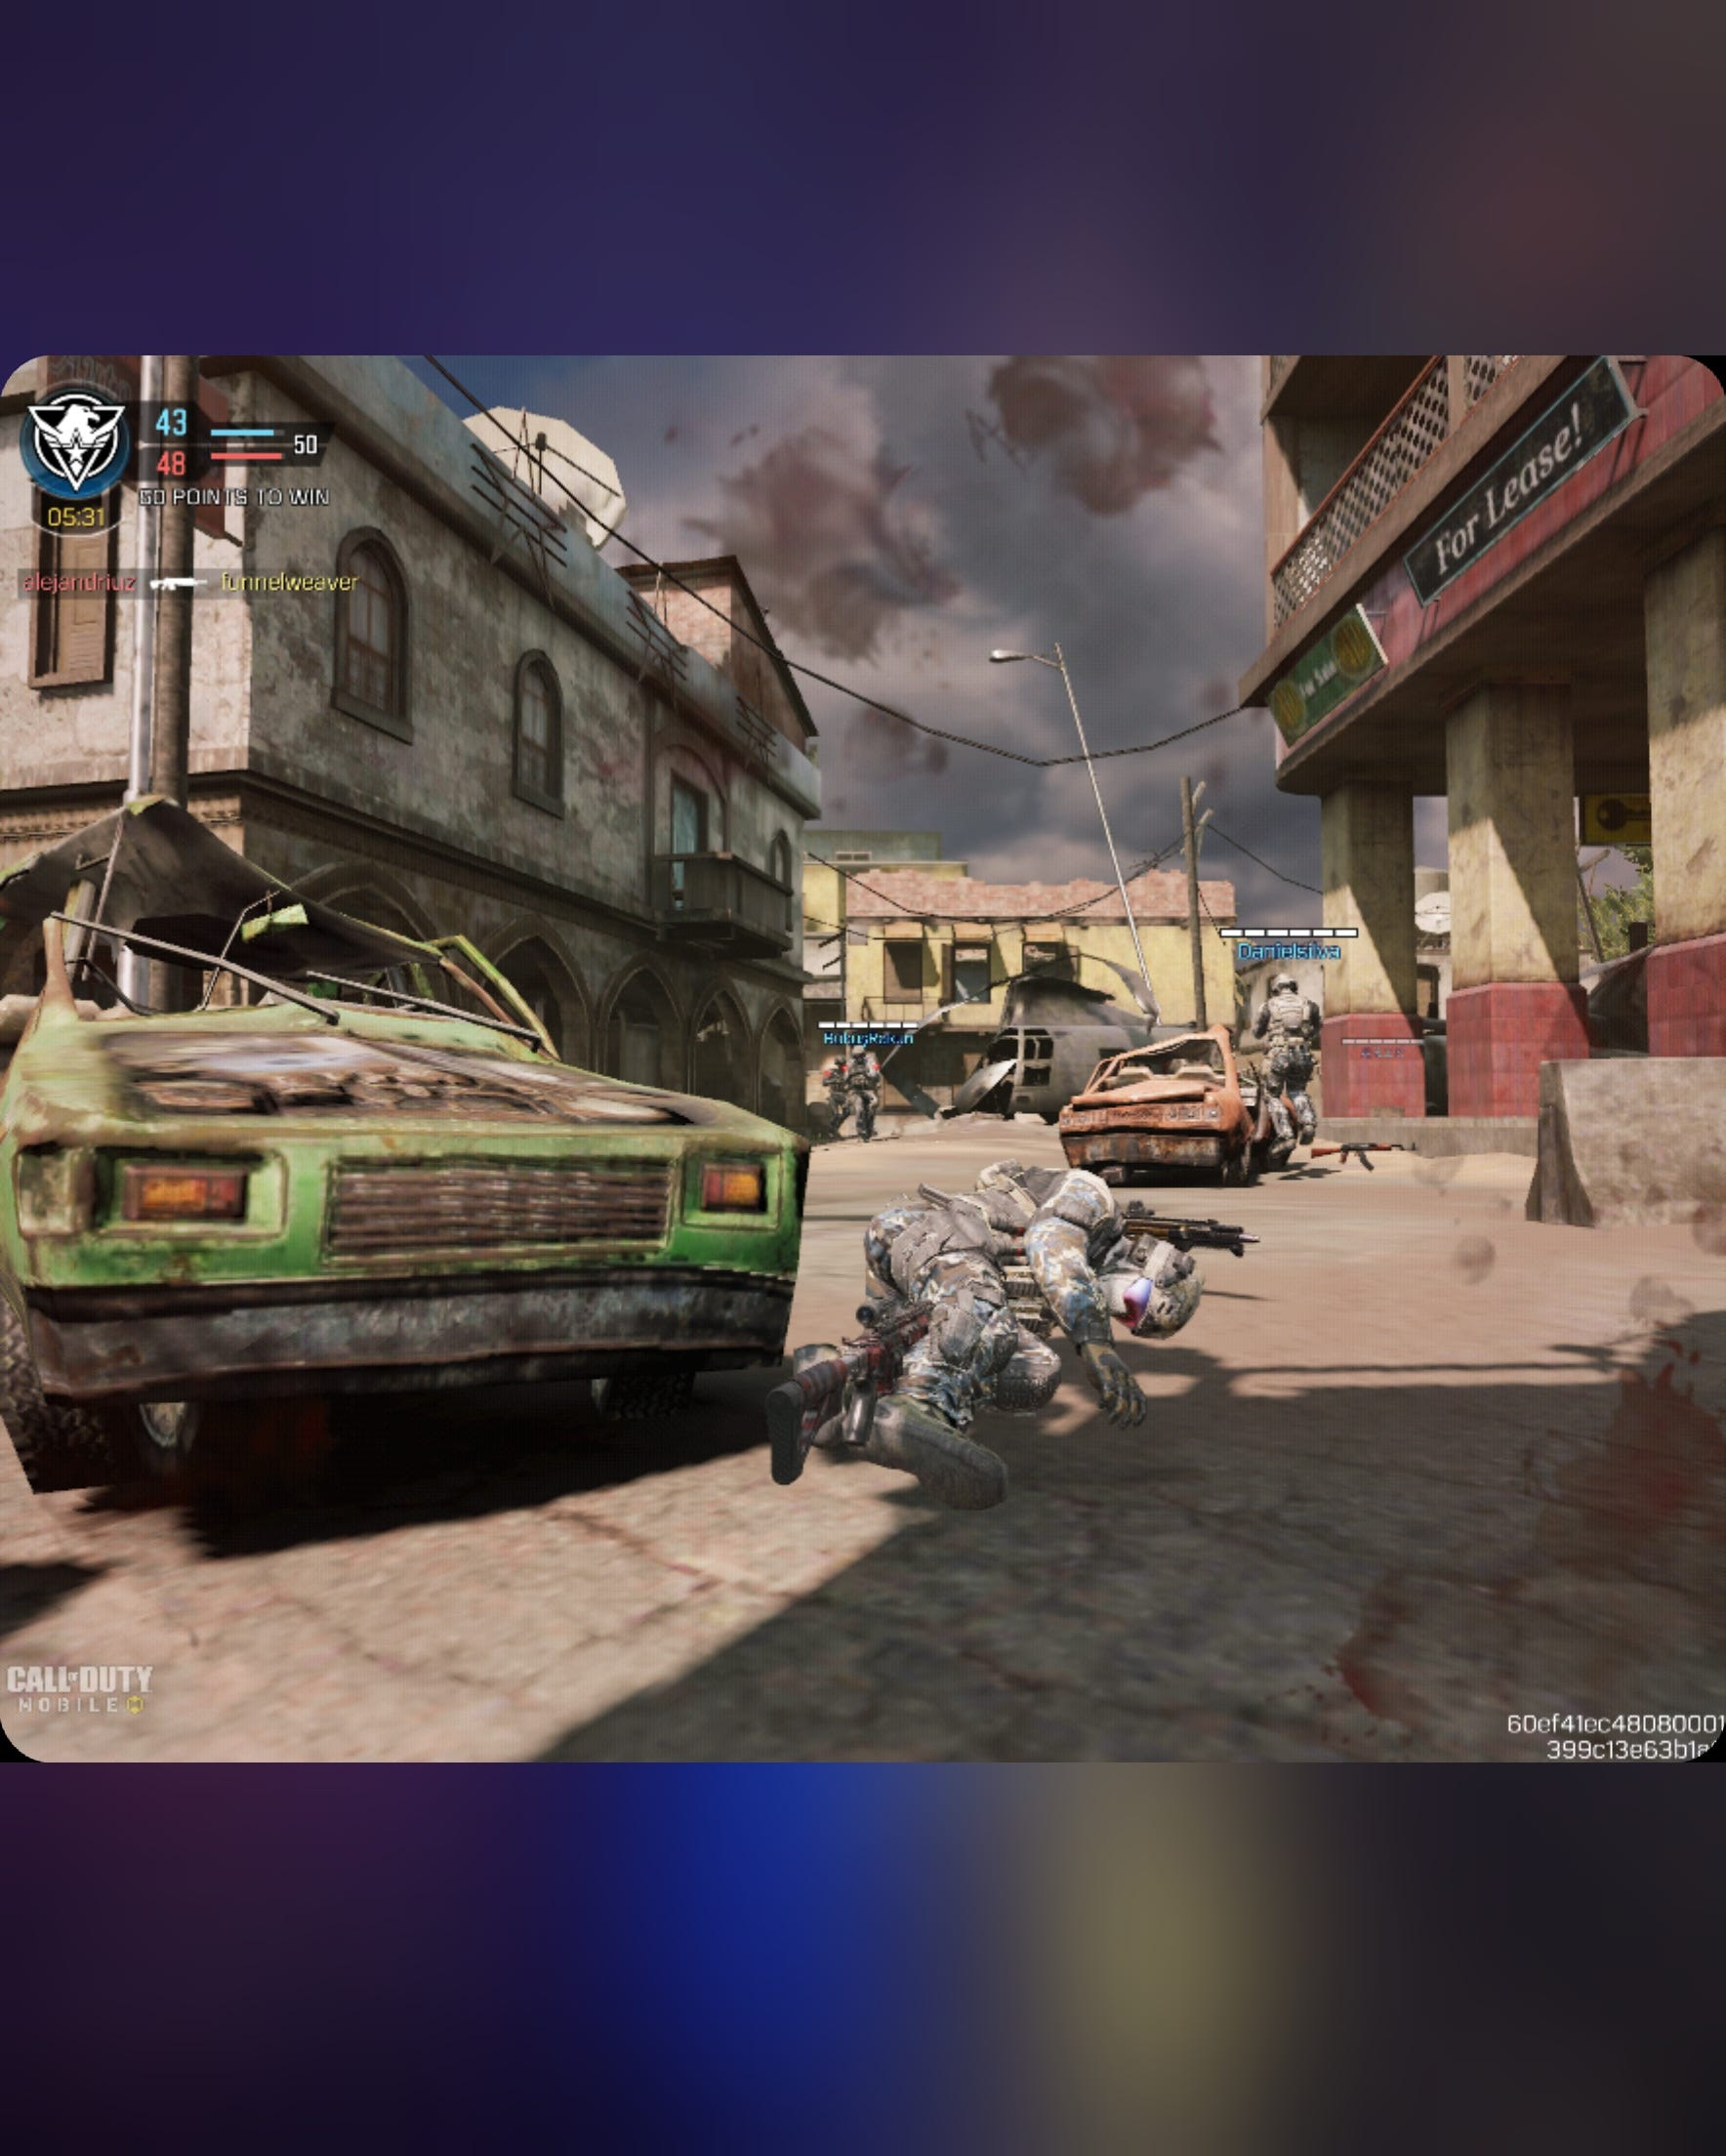 Call of Duty Mobile on the Fold 3's main display